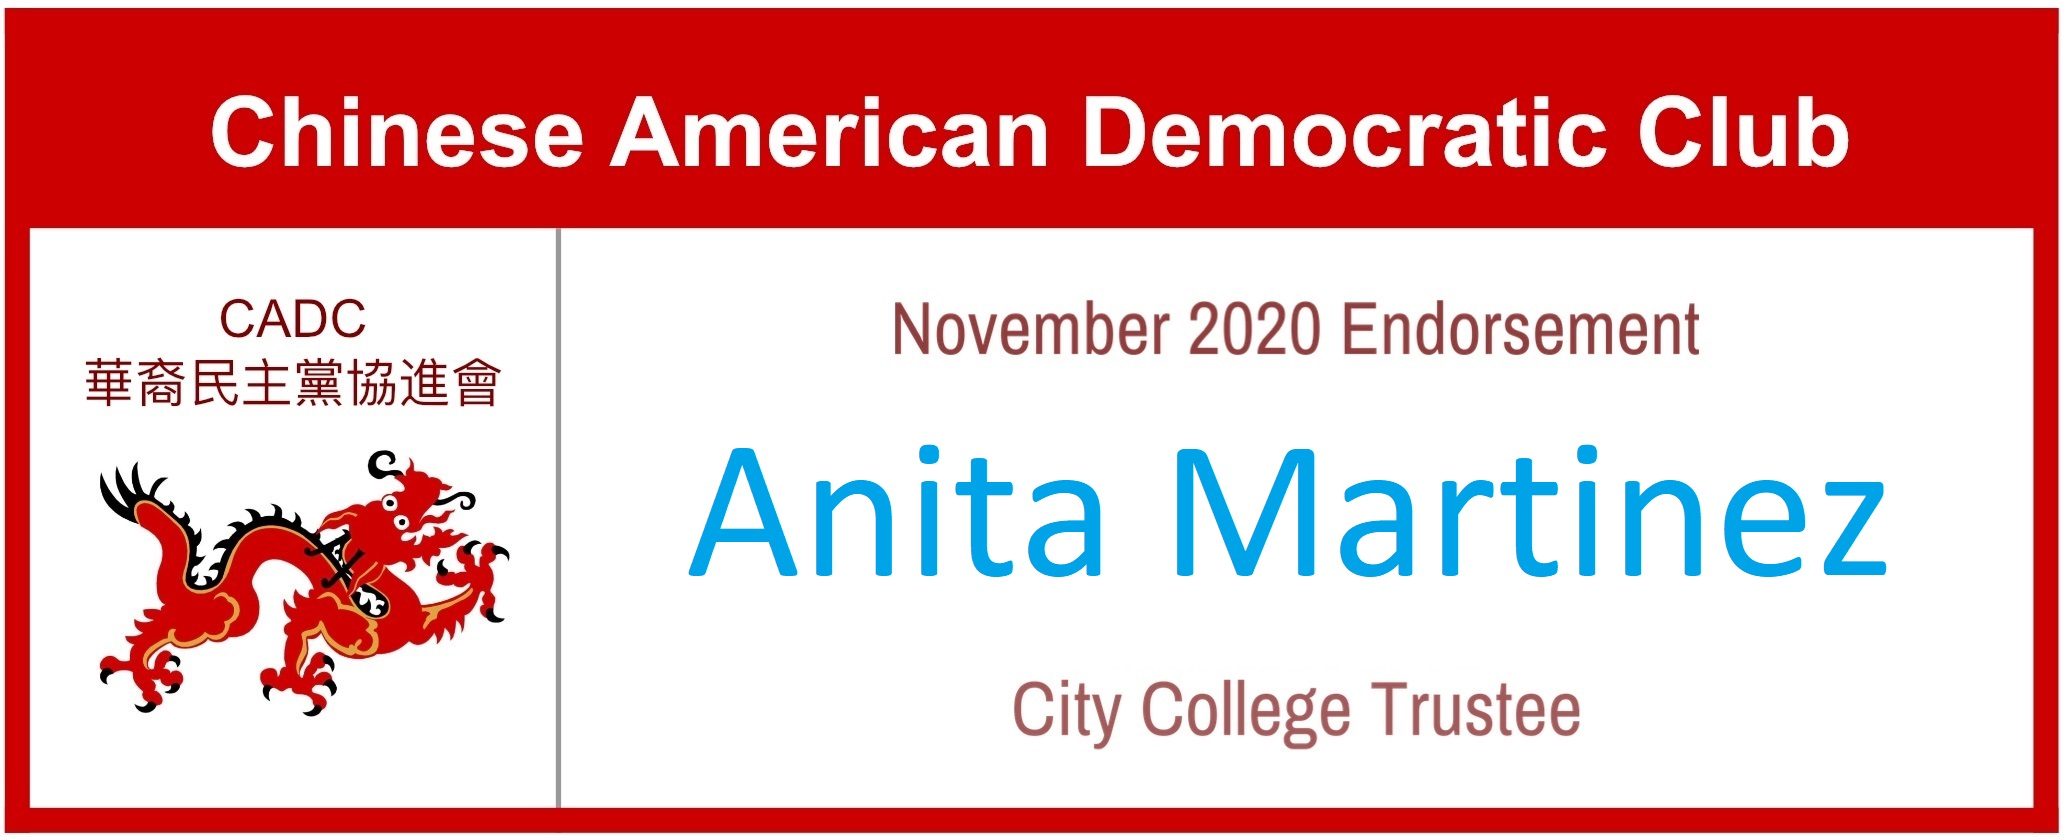 Anita Martinez for City College Trustee - CADC Endorsement November 2020